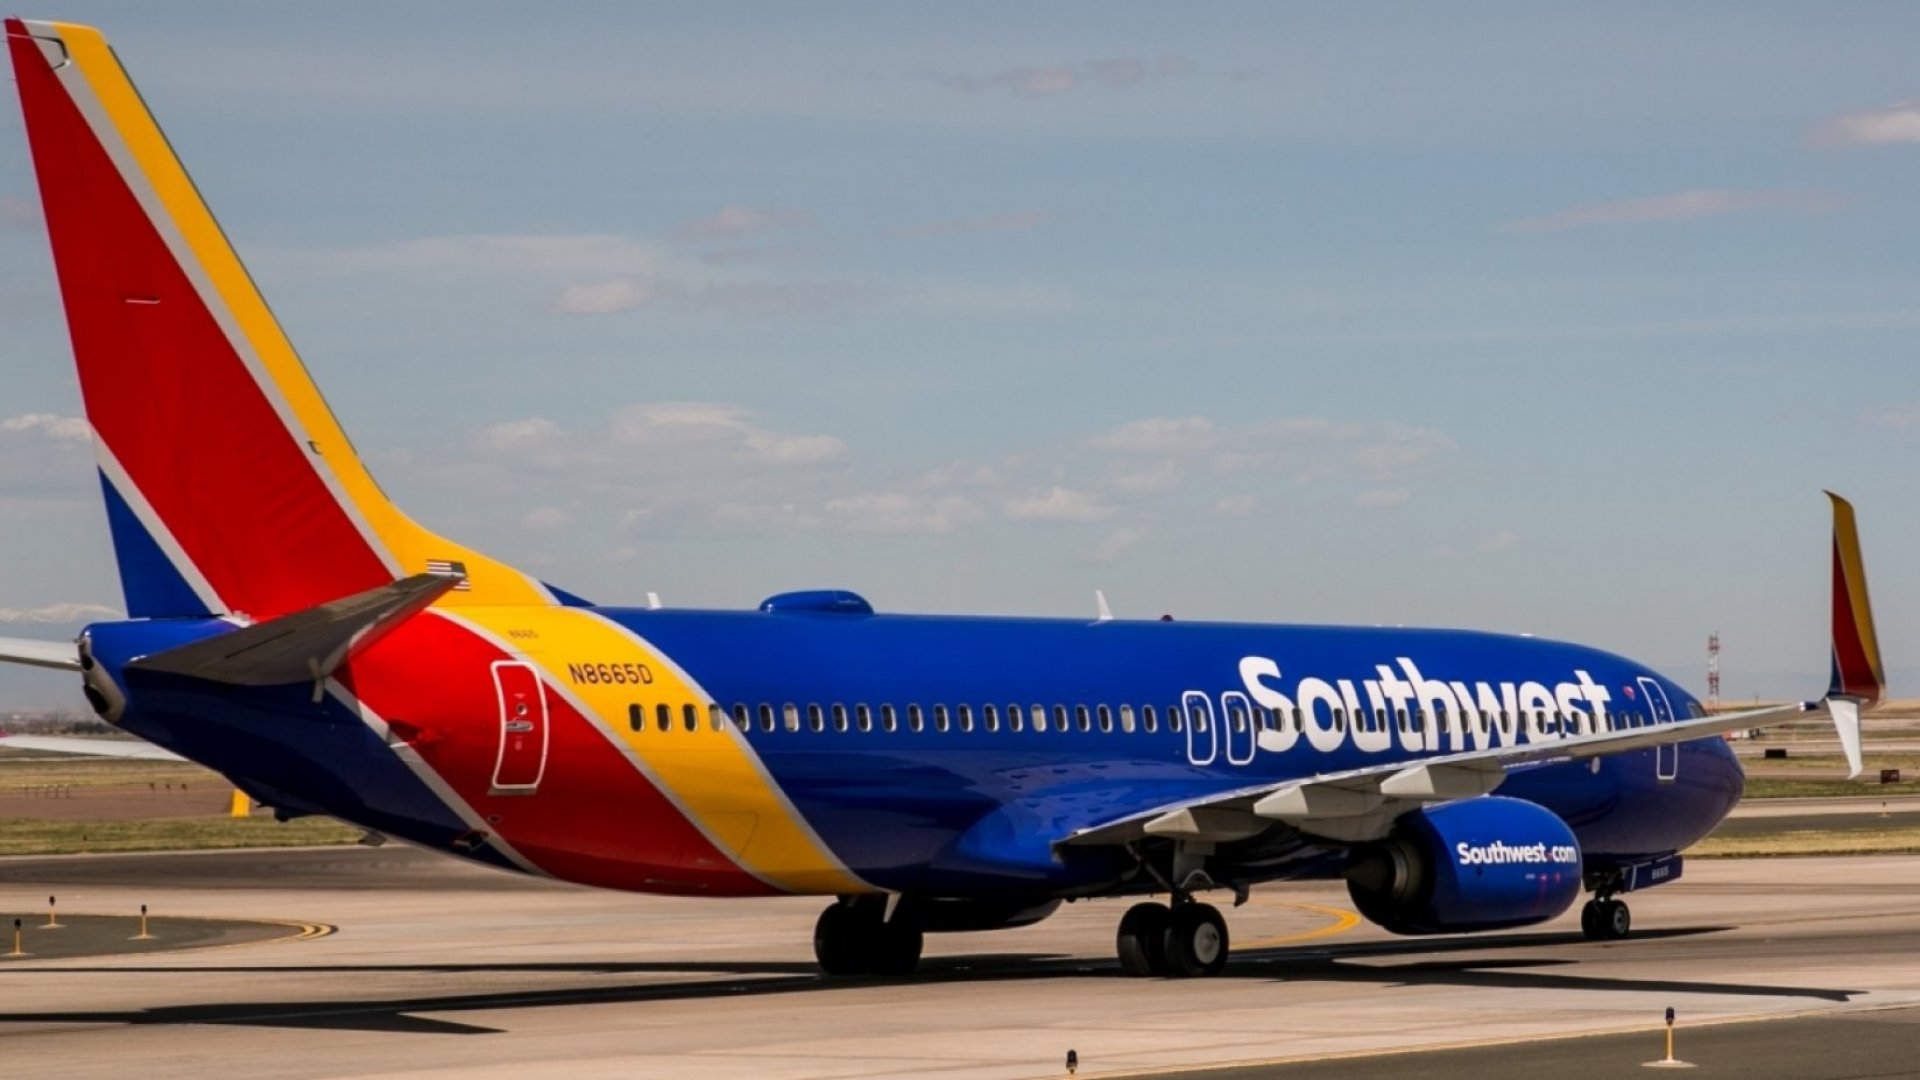 Southwest Airlines Just Took a Bold Stand Against the Sheer Absurdity of 'Emotional Support Peacocks' (but Cats and Dogs Are Still OK)